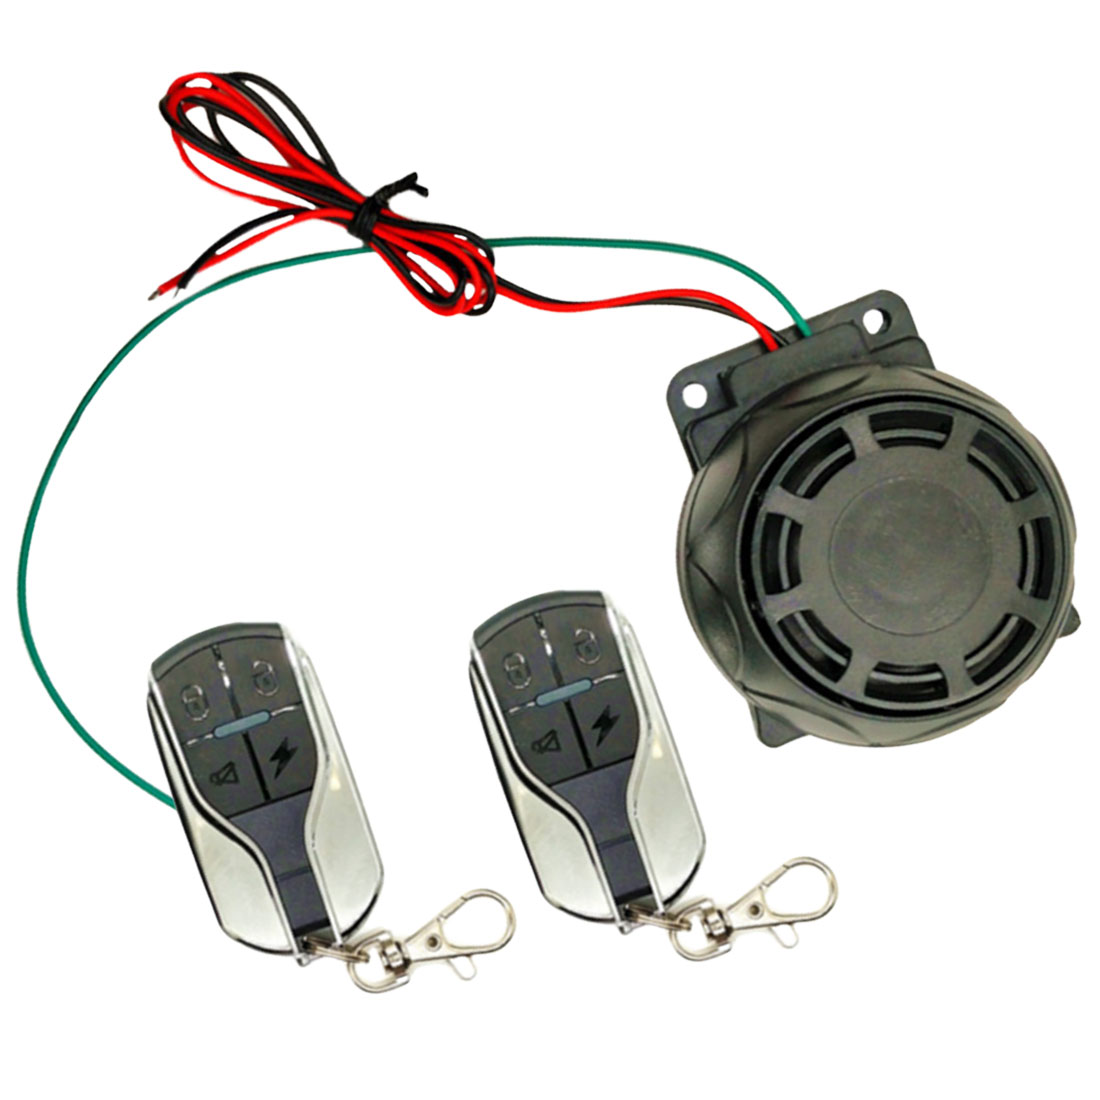 Motorcycle Anti-theft Bike Scooter Alarm Systems Remote Control Motorbike Security Alarm Systems Dual Remote Control Power